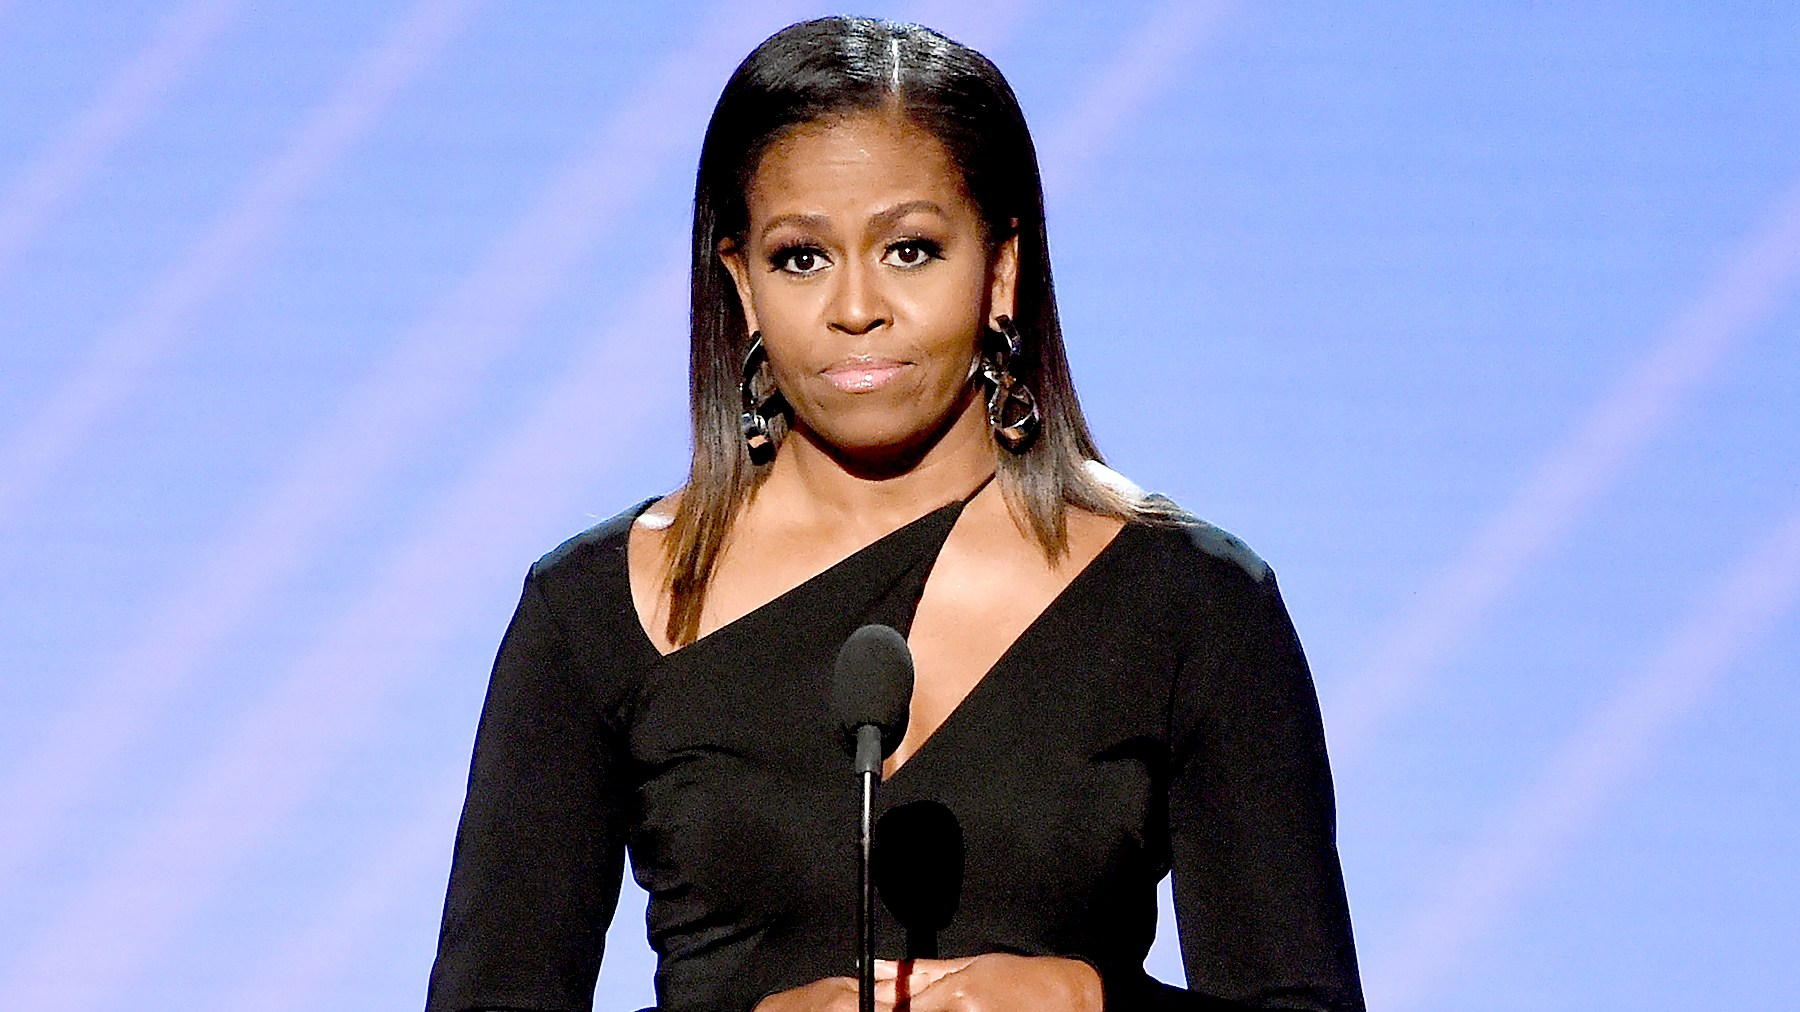 Former First Lady Michelle Obama speaks onstage at The 2017 ESPYS at Microsoft Theater on July 12, 2017 in Los Angeles, California.